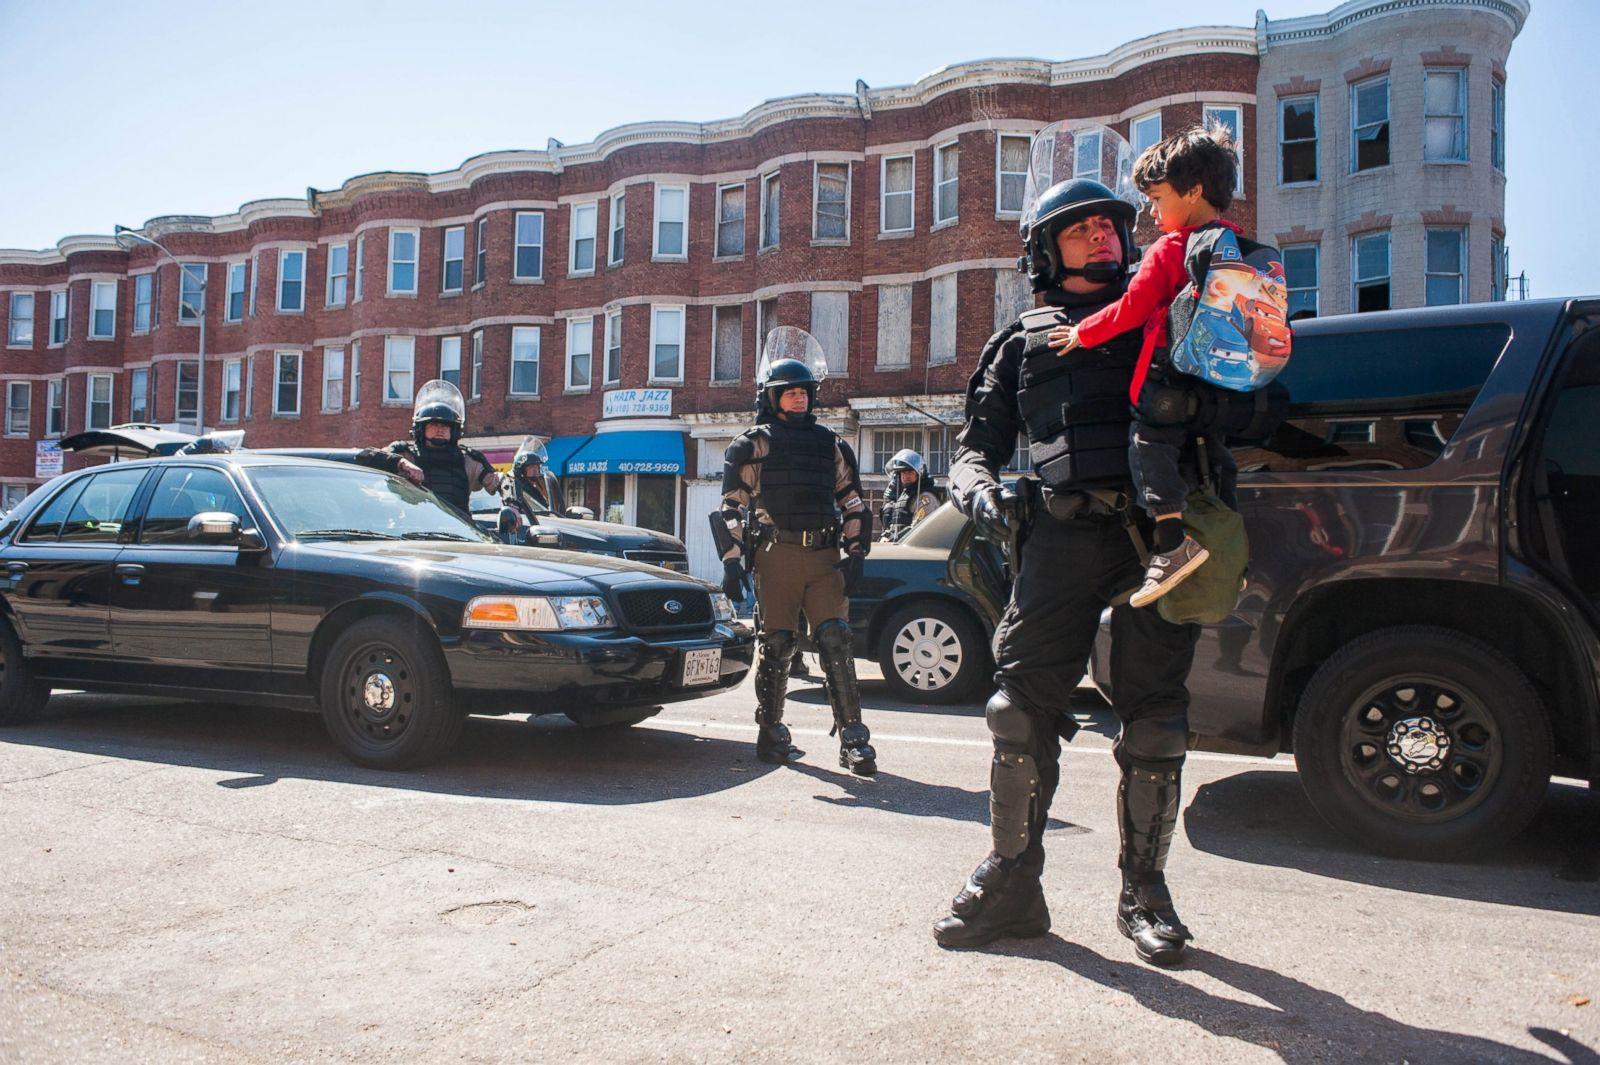 Baltimore police officers in riot gear push protestors back along - Baltimore Police Officers In Riot Gear Push Protestors Back Along 58